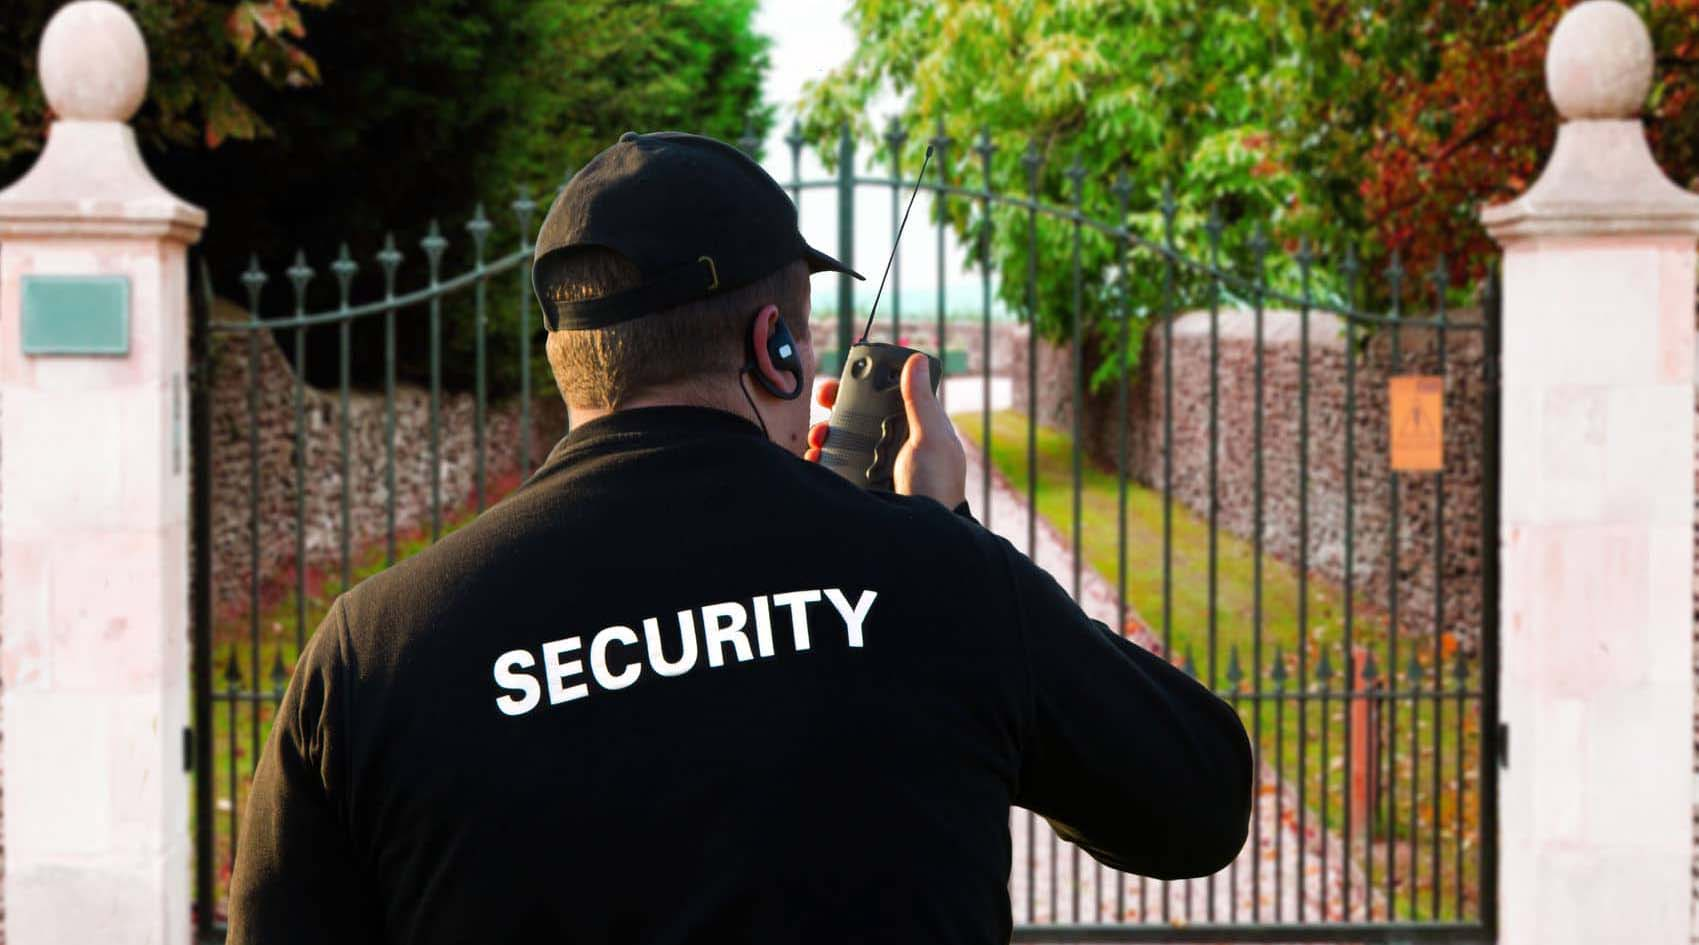 Security Zogno - ✅ professionisti per la vostra sicurezza!